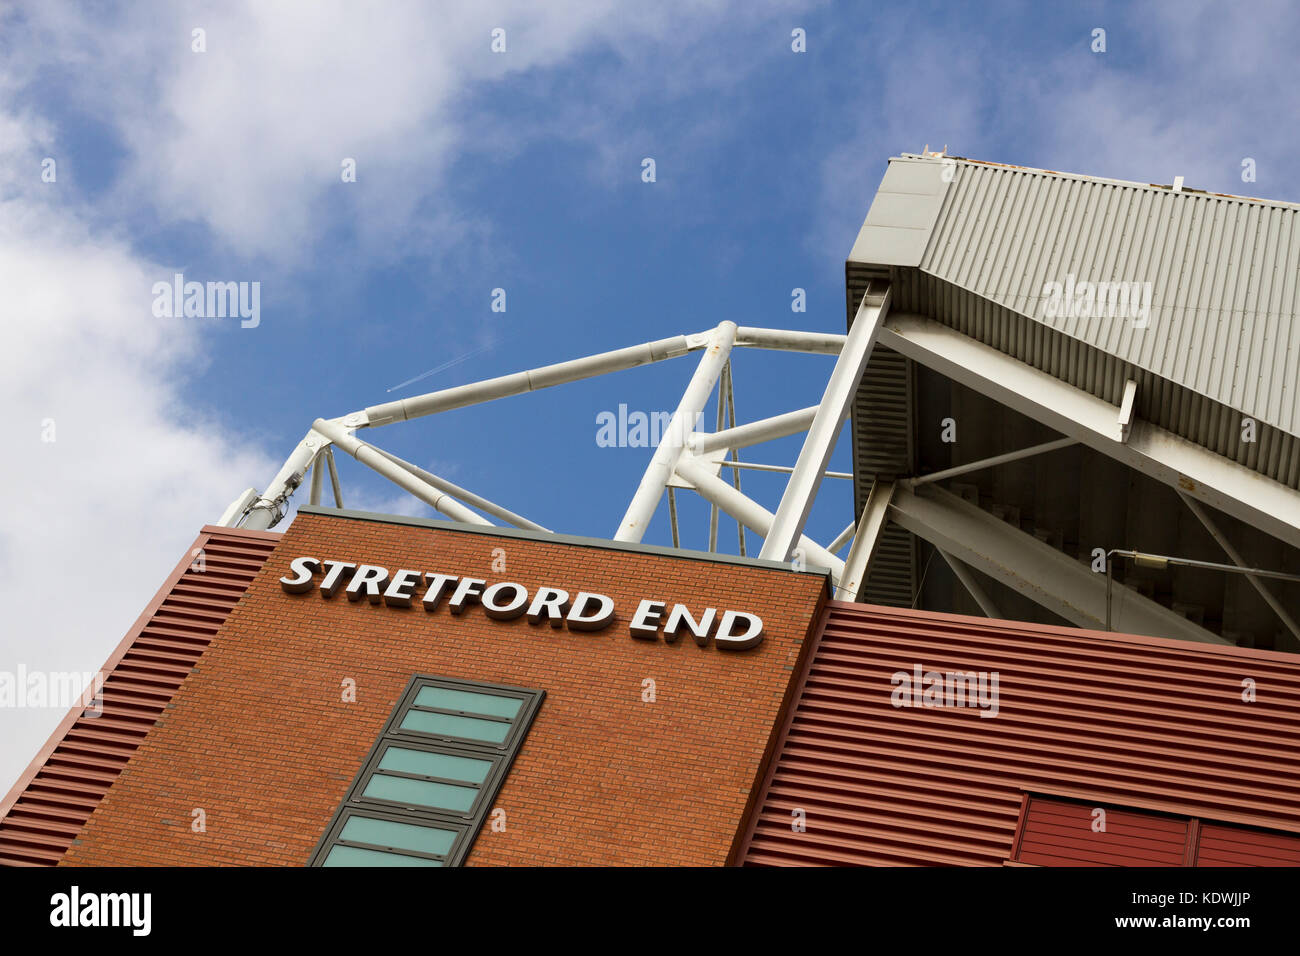 The Stretford End or West Stand at Old Trafford Footall Stadium. Home of Manchester United Football Club. - Stock Image